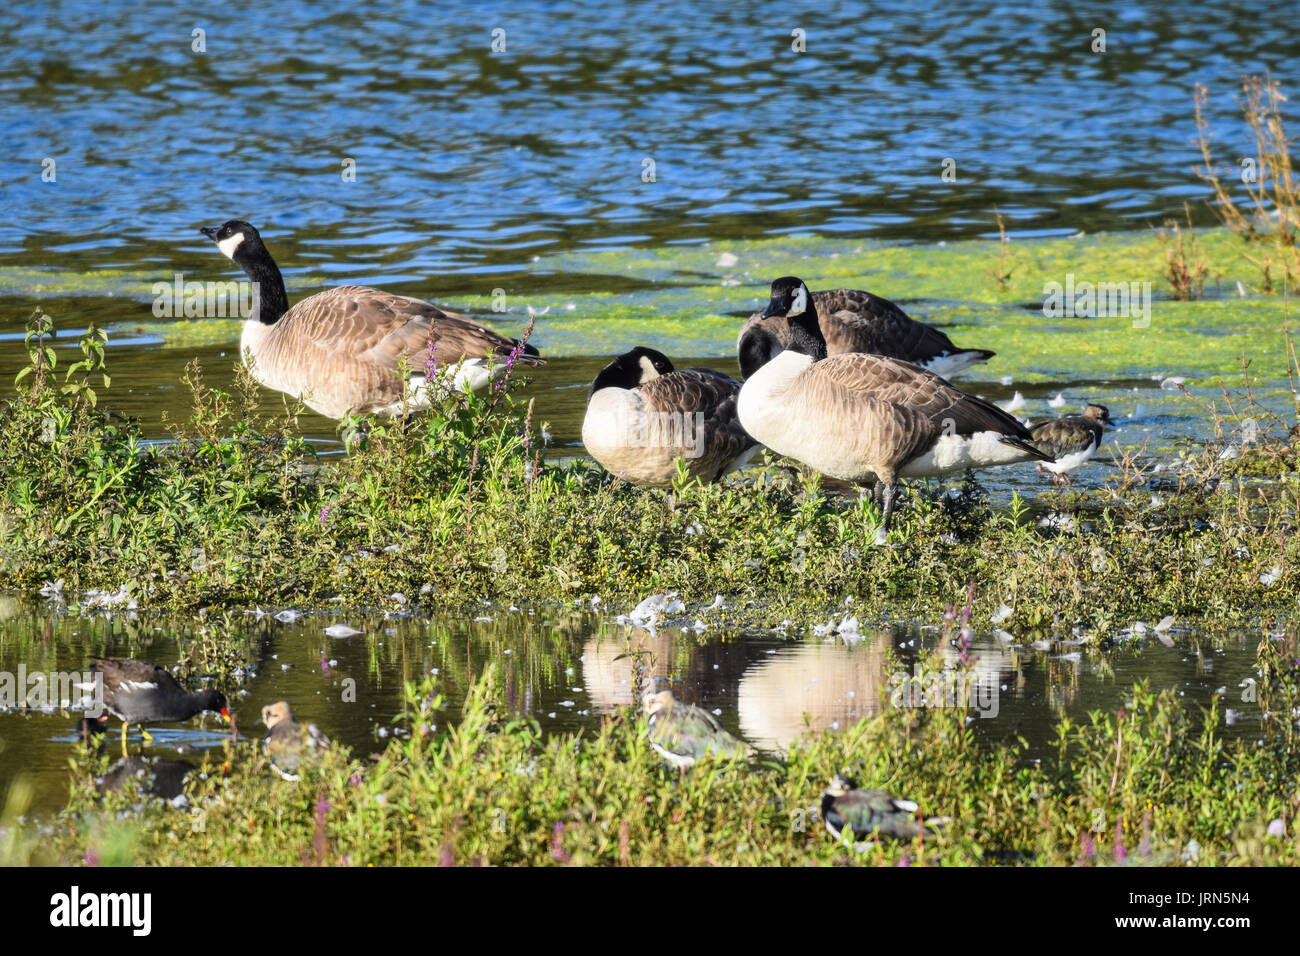 Lapwing wildlife bird with moorhen and Canada geese in shallow water in summer Stock Photo